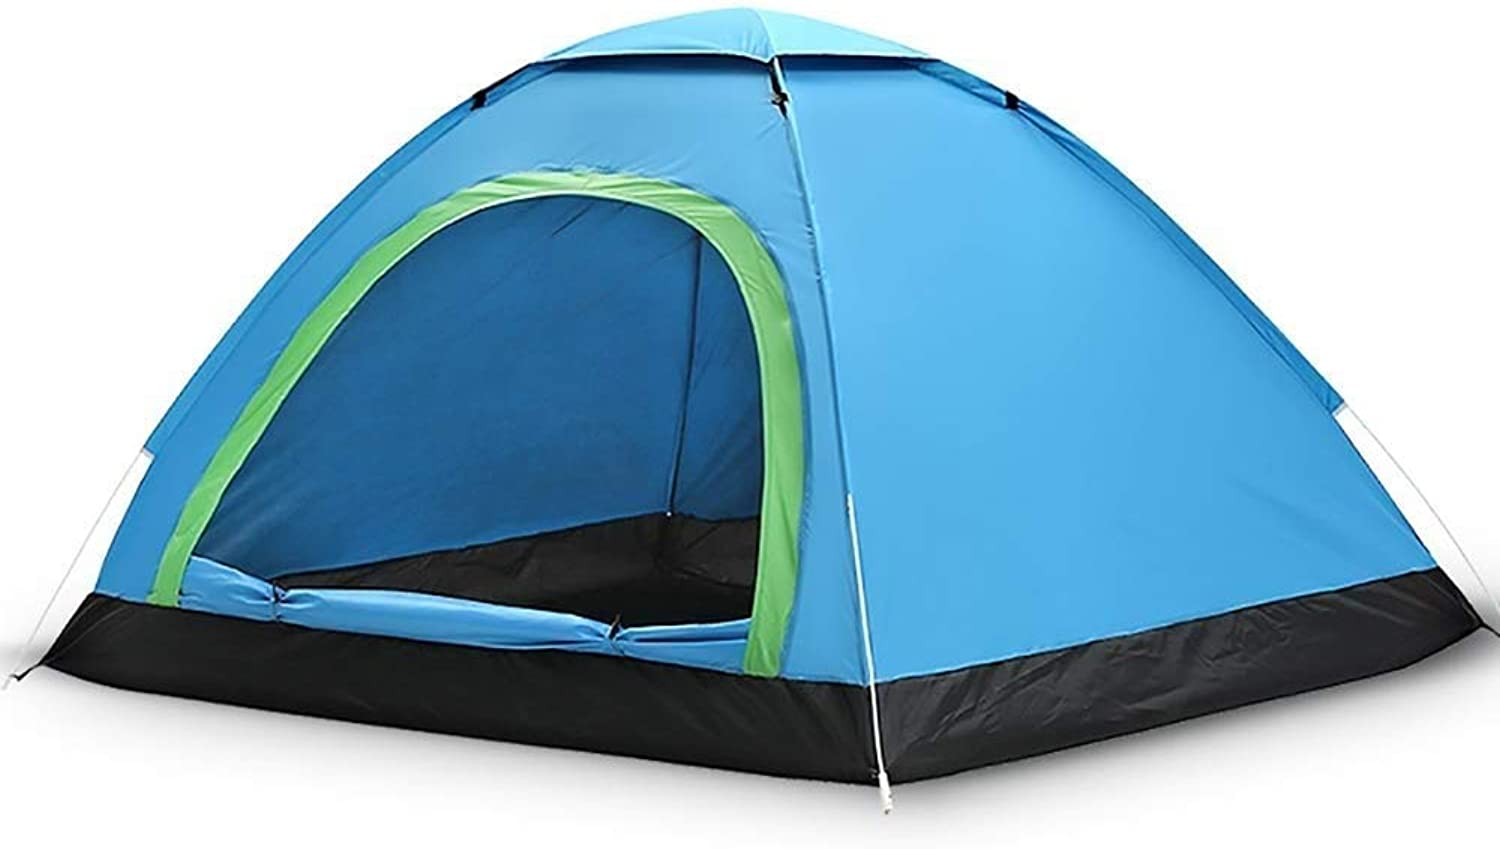 YFFSS TentDome Tent for Camping   Dome Tent for Camping   Lightweight 2-Person Backpacking TentLarge Size Easy Setup Tent for Family,Outdoor,Hiking and Mountaineering